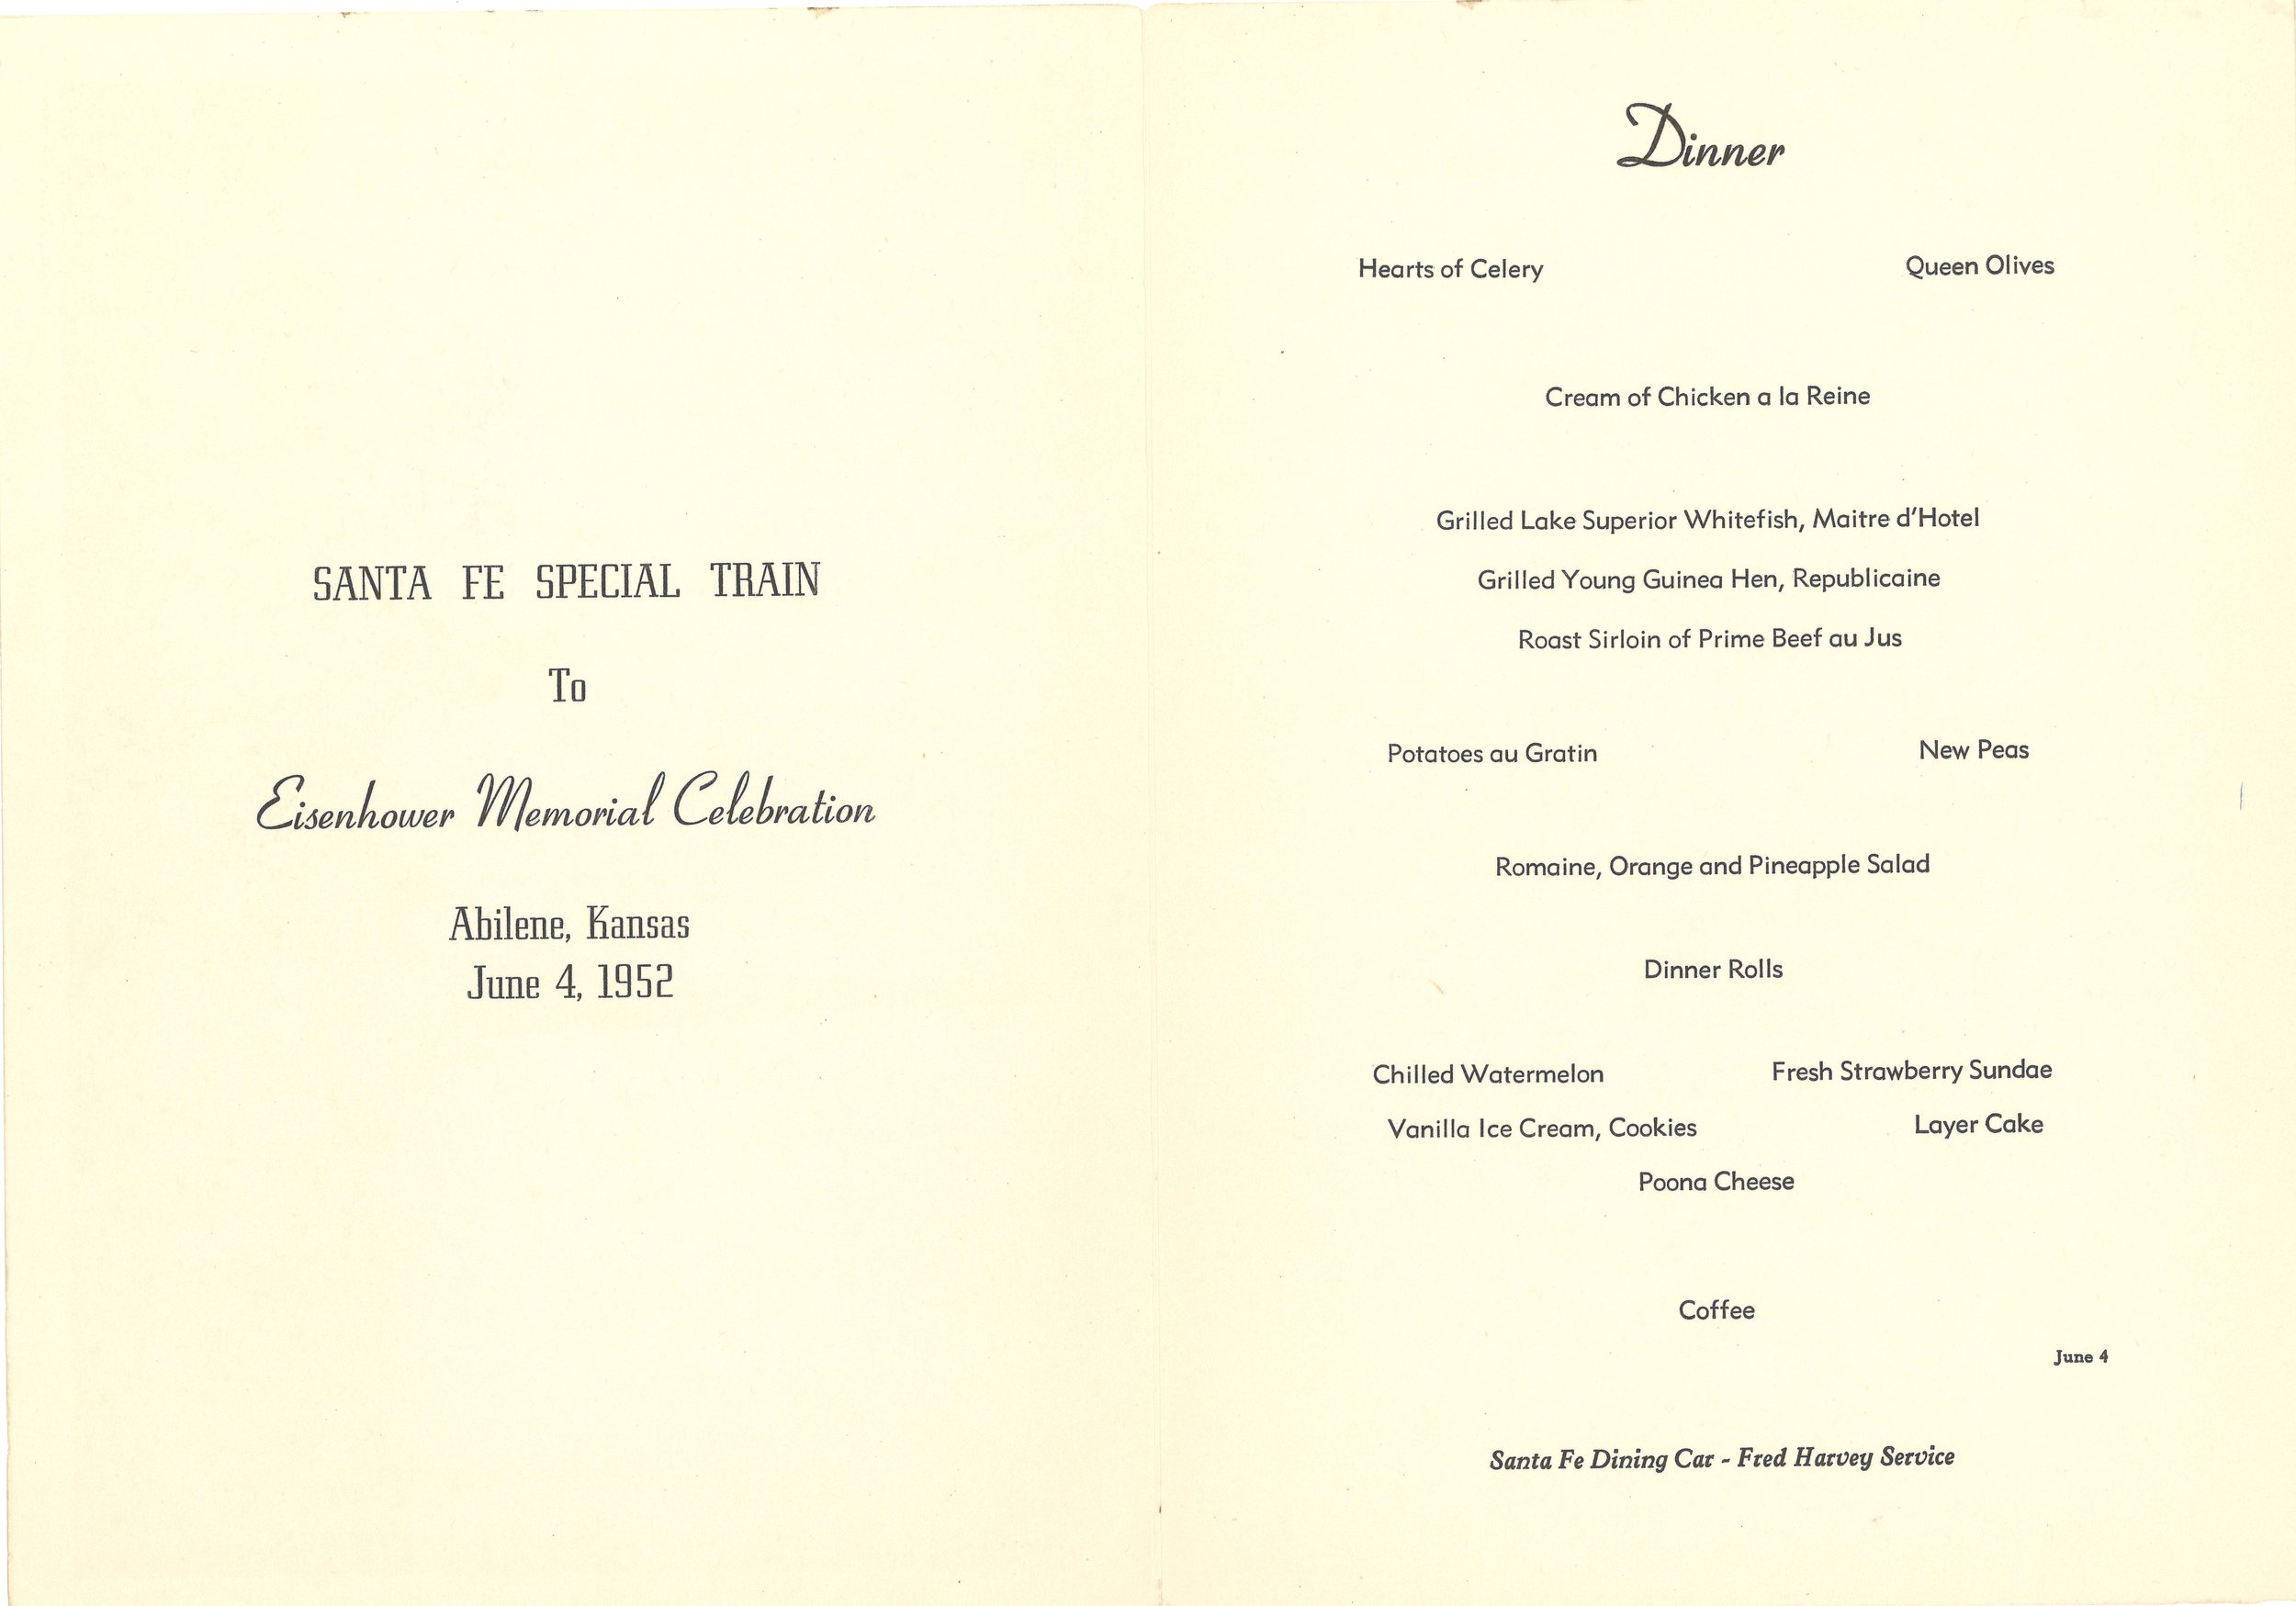 Santa Fe Special Train to Eisenhower Memorial Celebration Menu_sm2.jpg